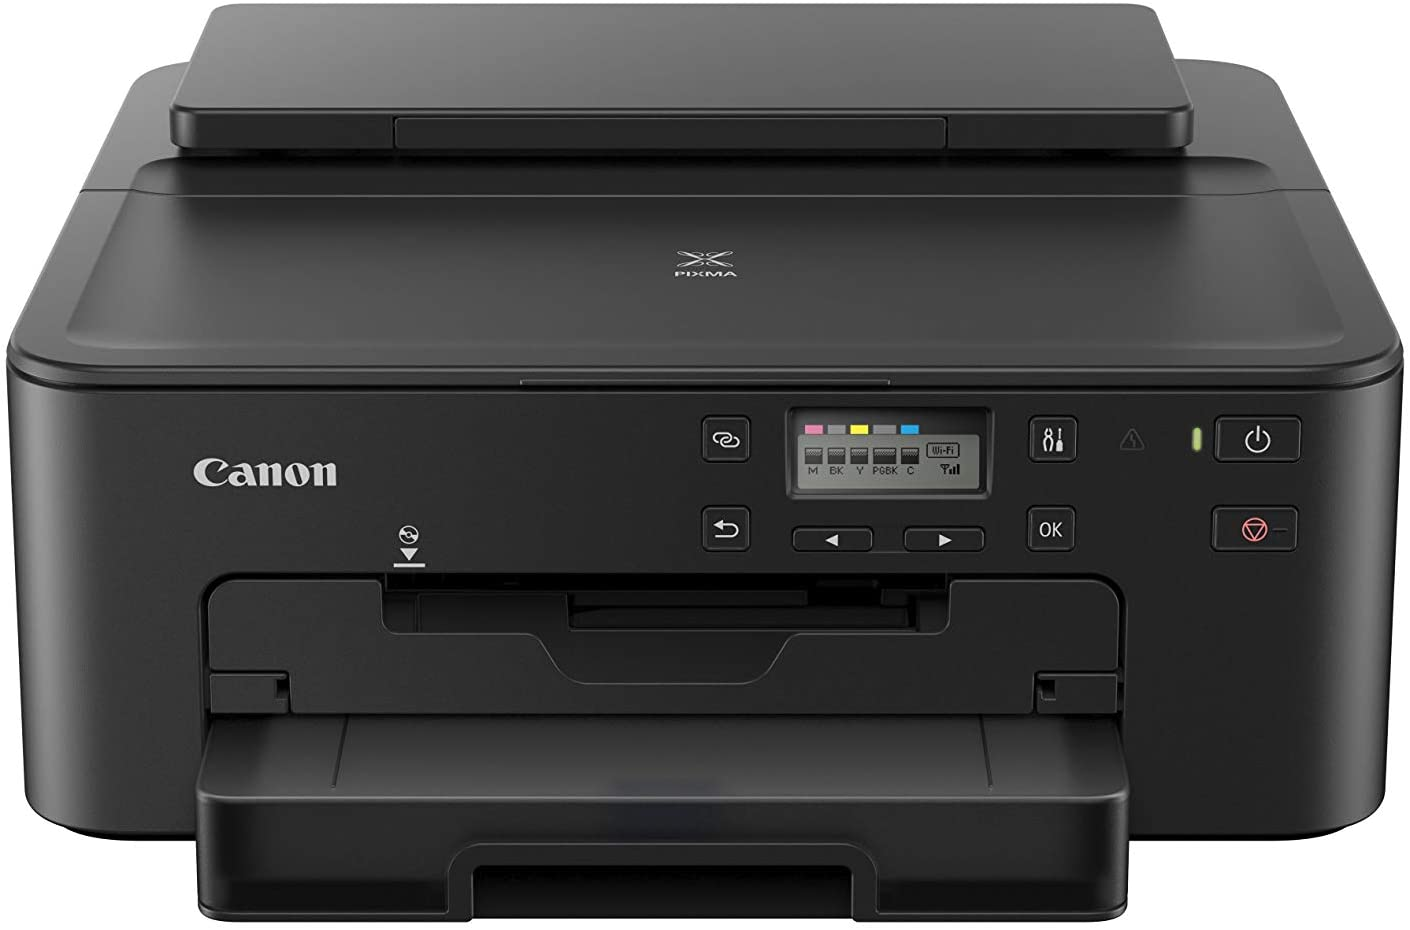 Canon PIXMA TS705 - Black uk reviews